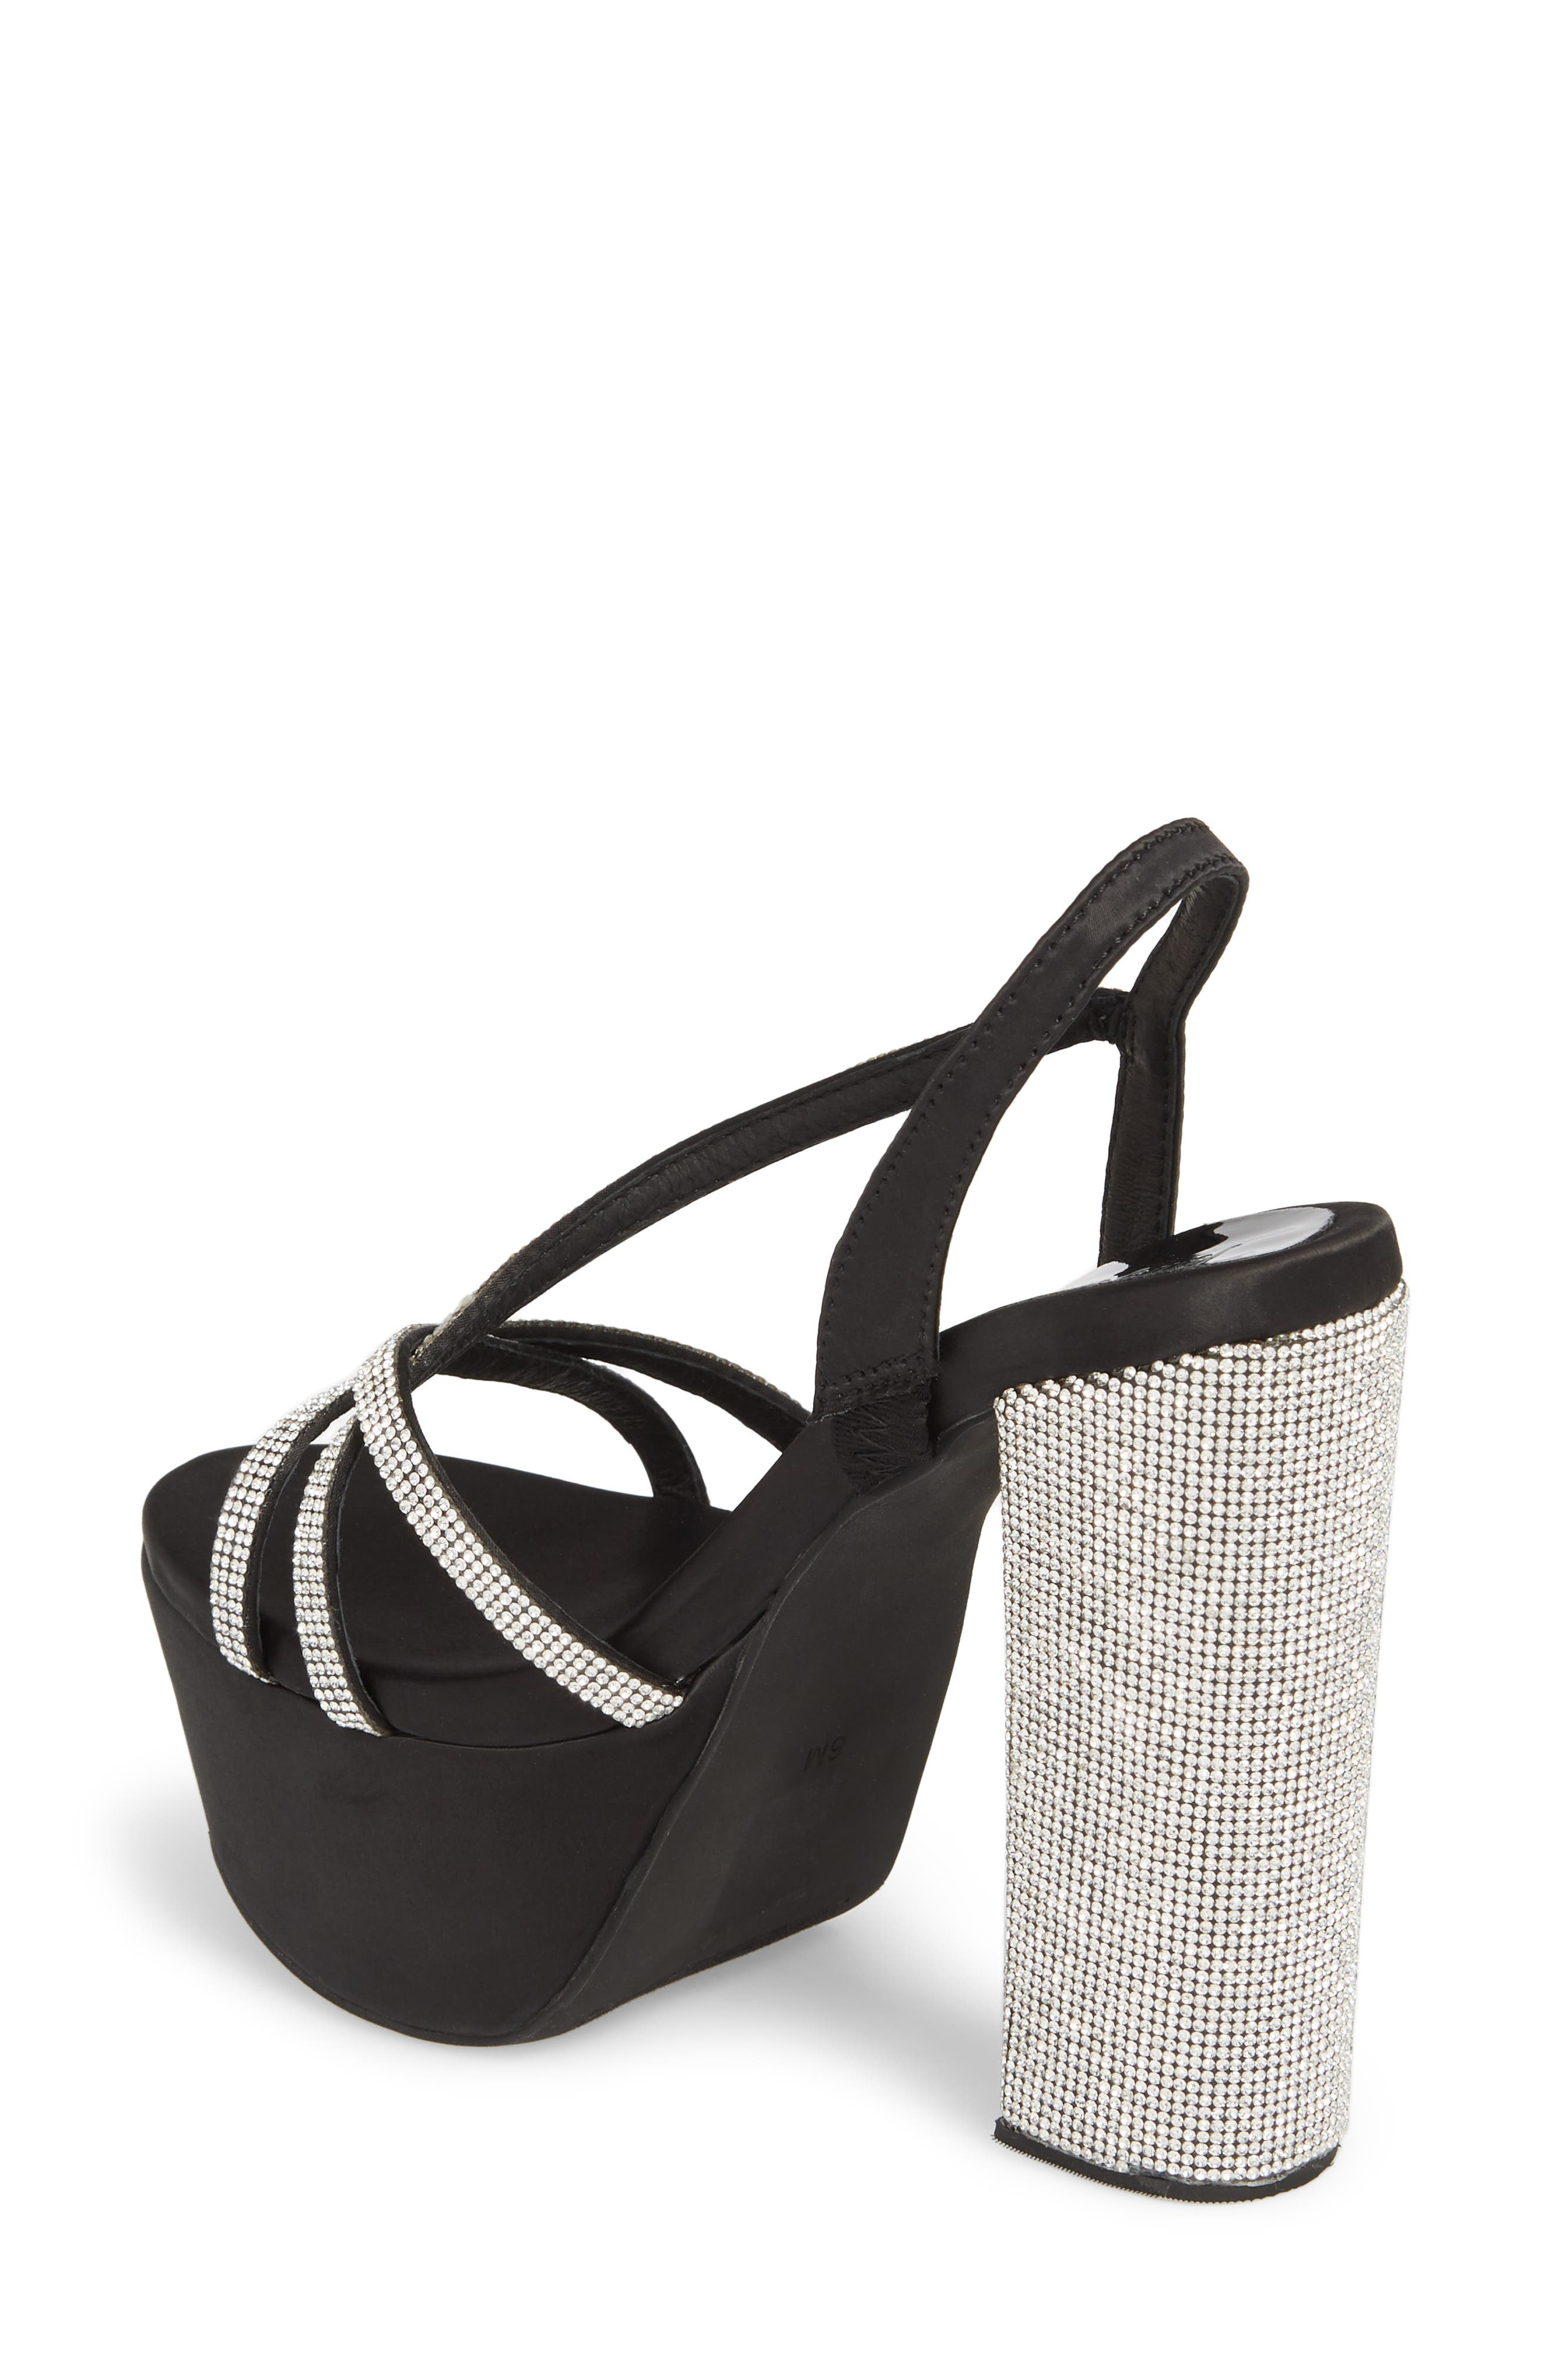 Upset Embellished Platform Sandal,                             Alternate thumbnail 2, color,                             BLACK SATIN/ SILVER